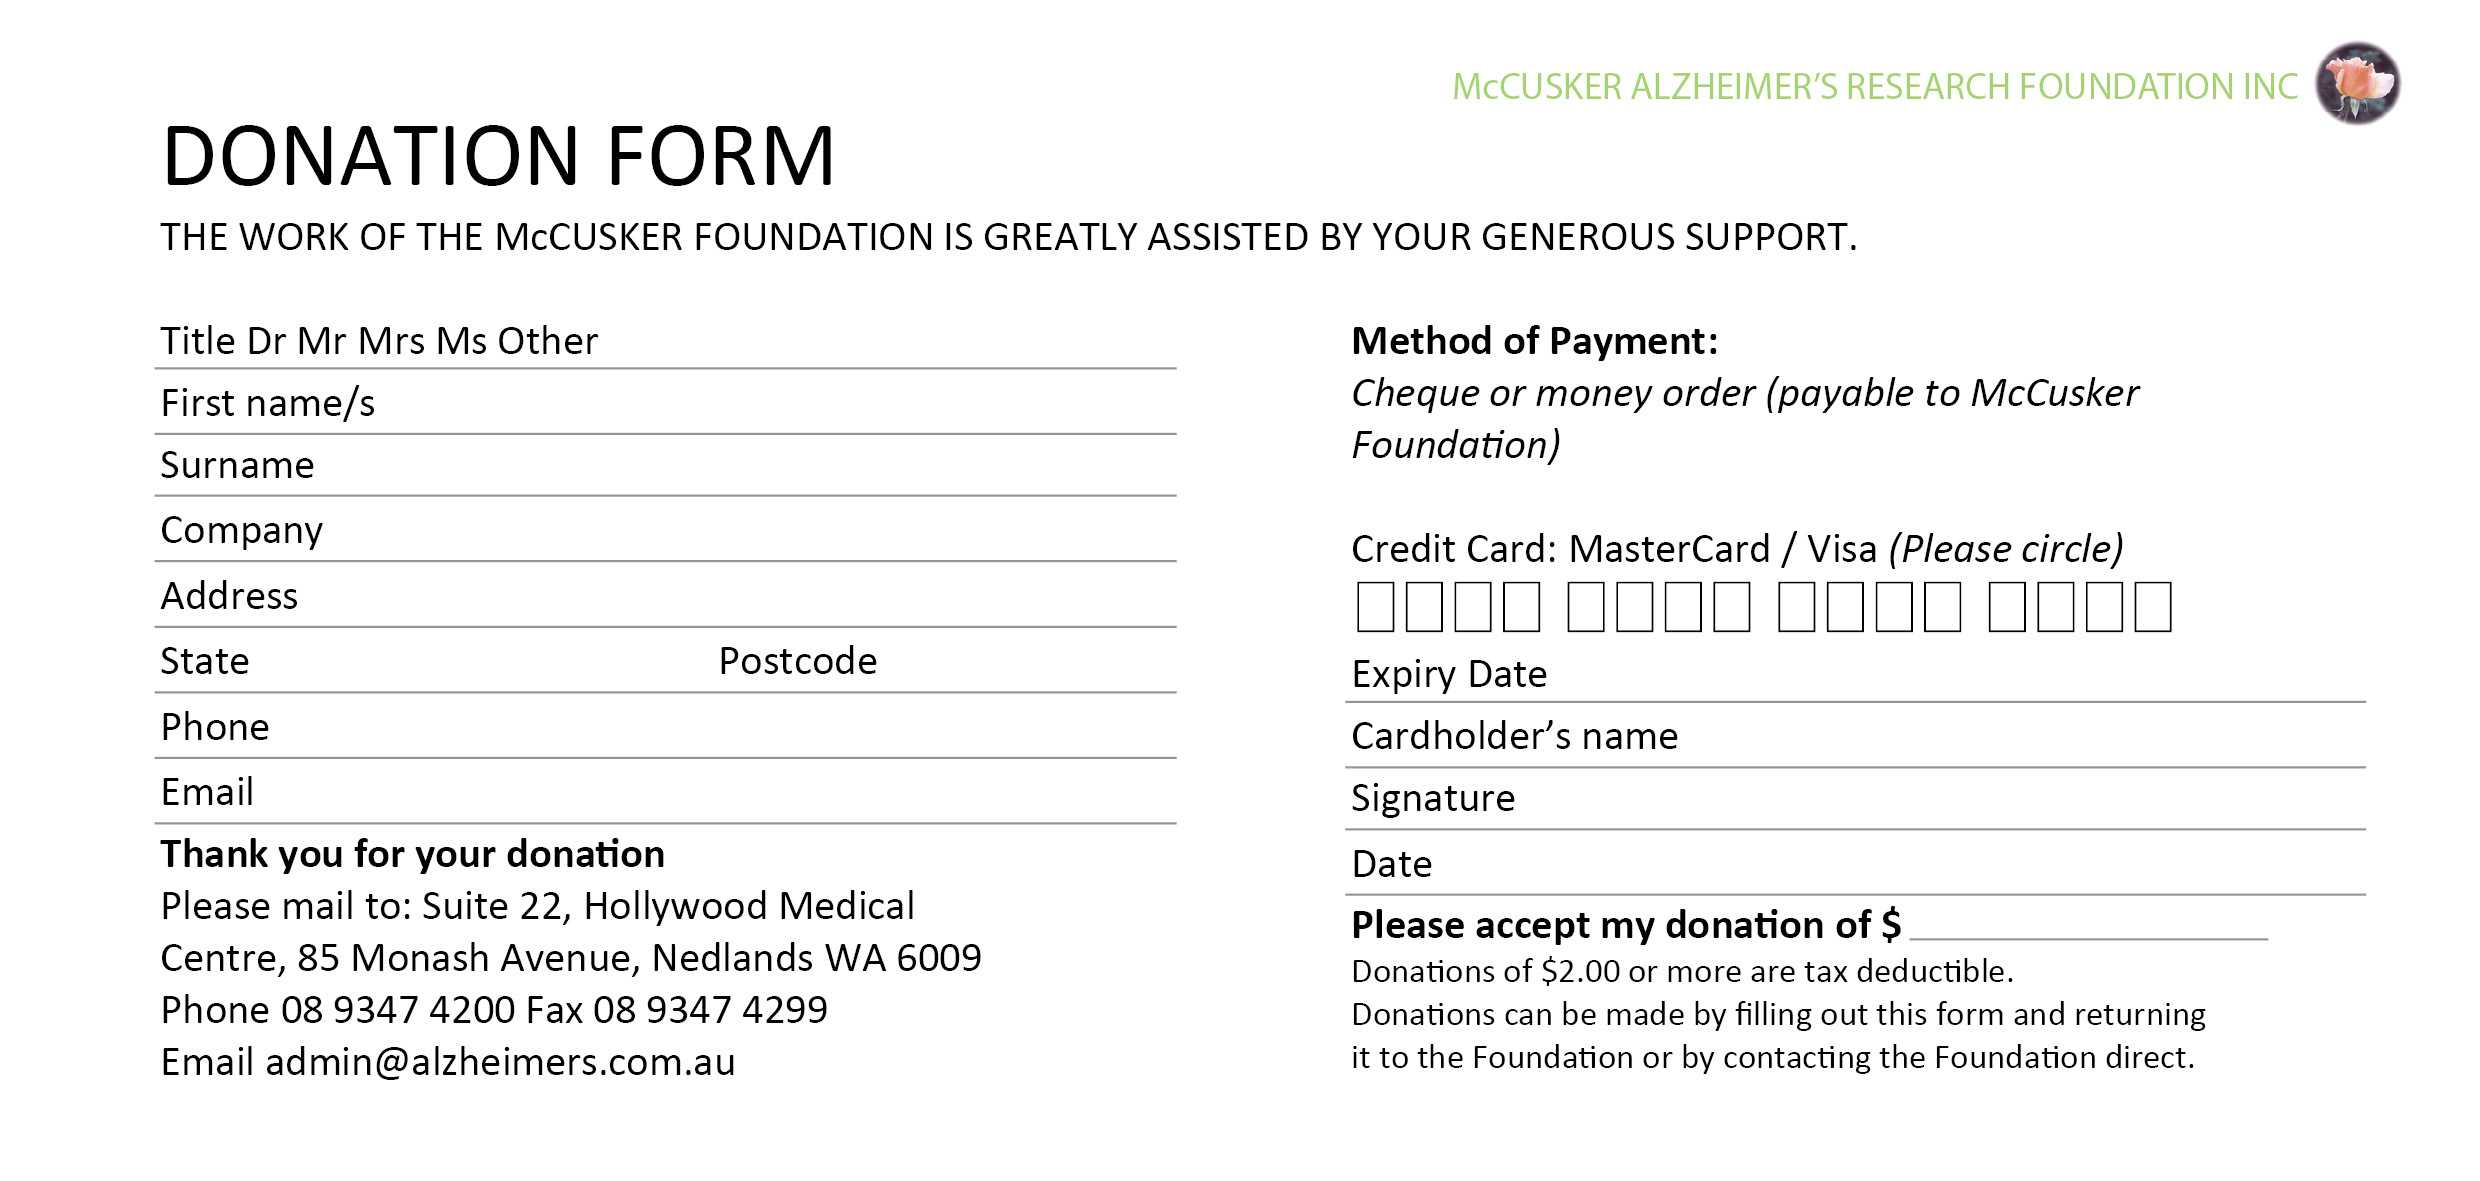 037 Fundraising Request Form Template Card Donation 458179 Regarding Donation Card Template Free